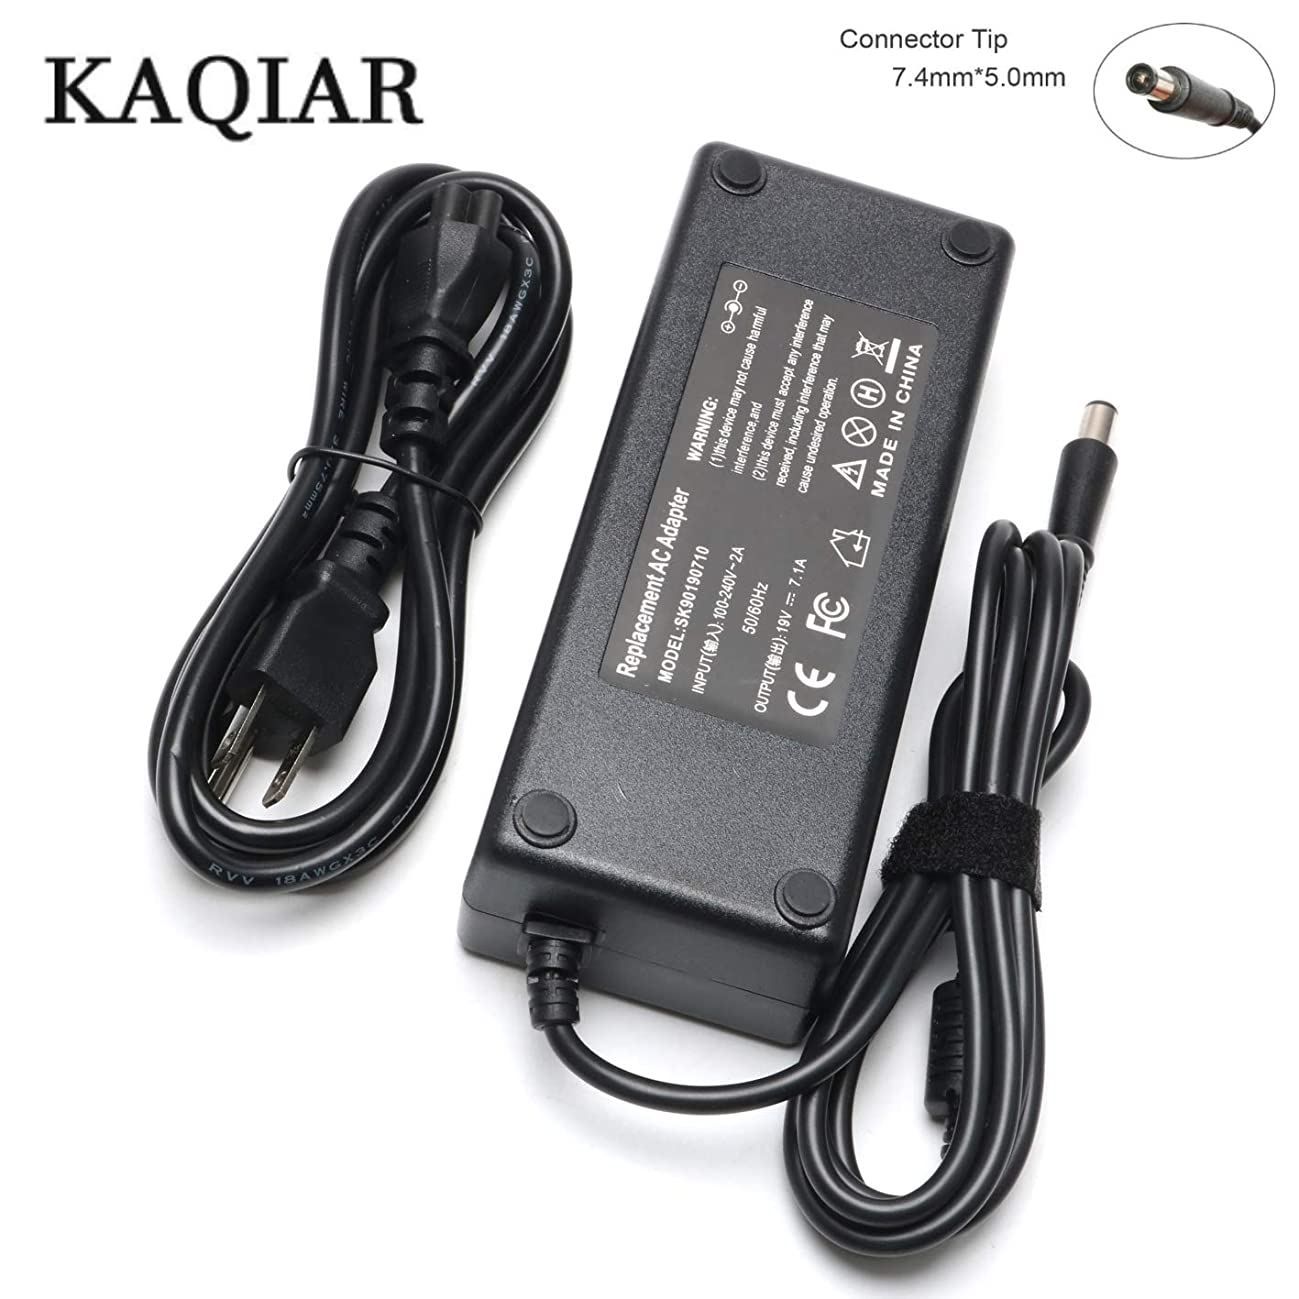 New 135W 19V 7.1A AC Adapter Laptop Charger Power Supply Replacement for HP 391174-001 384023 481420-001 DC7800 DC7900 Compaq Elite 8000 8200 8300 Notebook [7.4mm5.0mm]